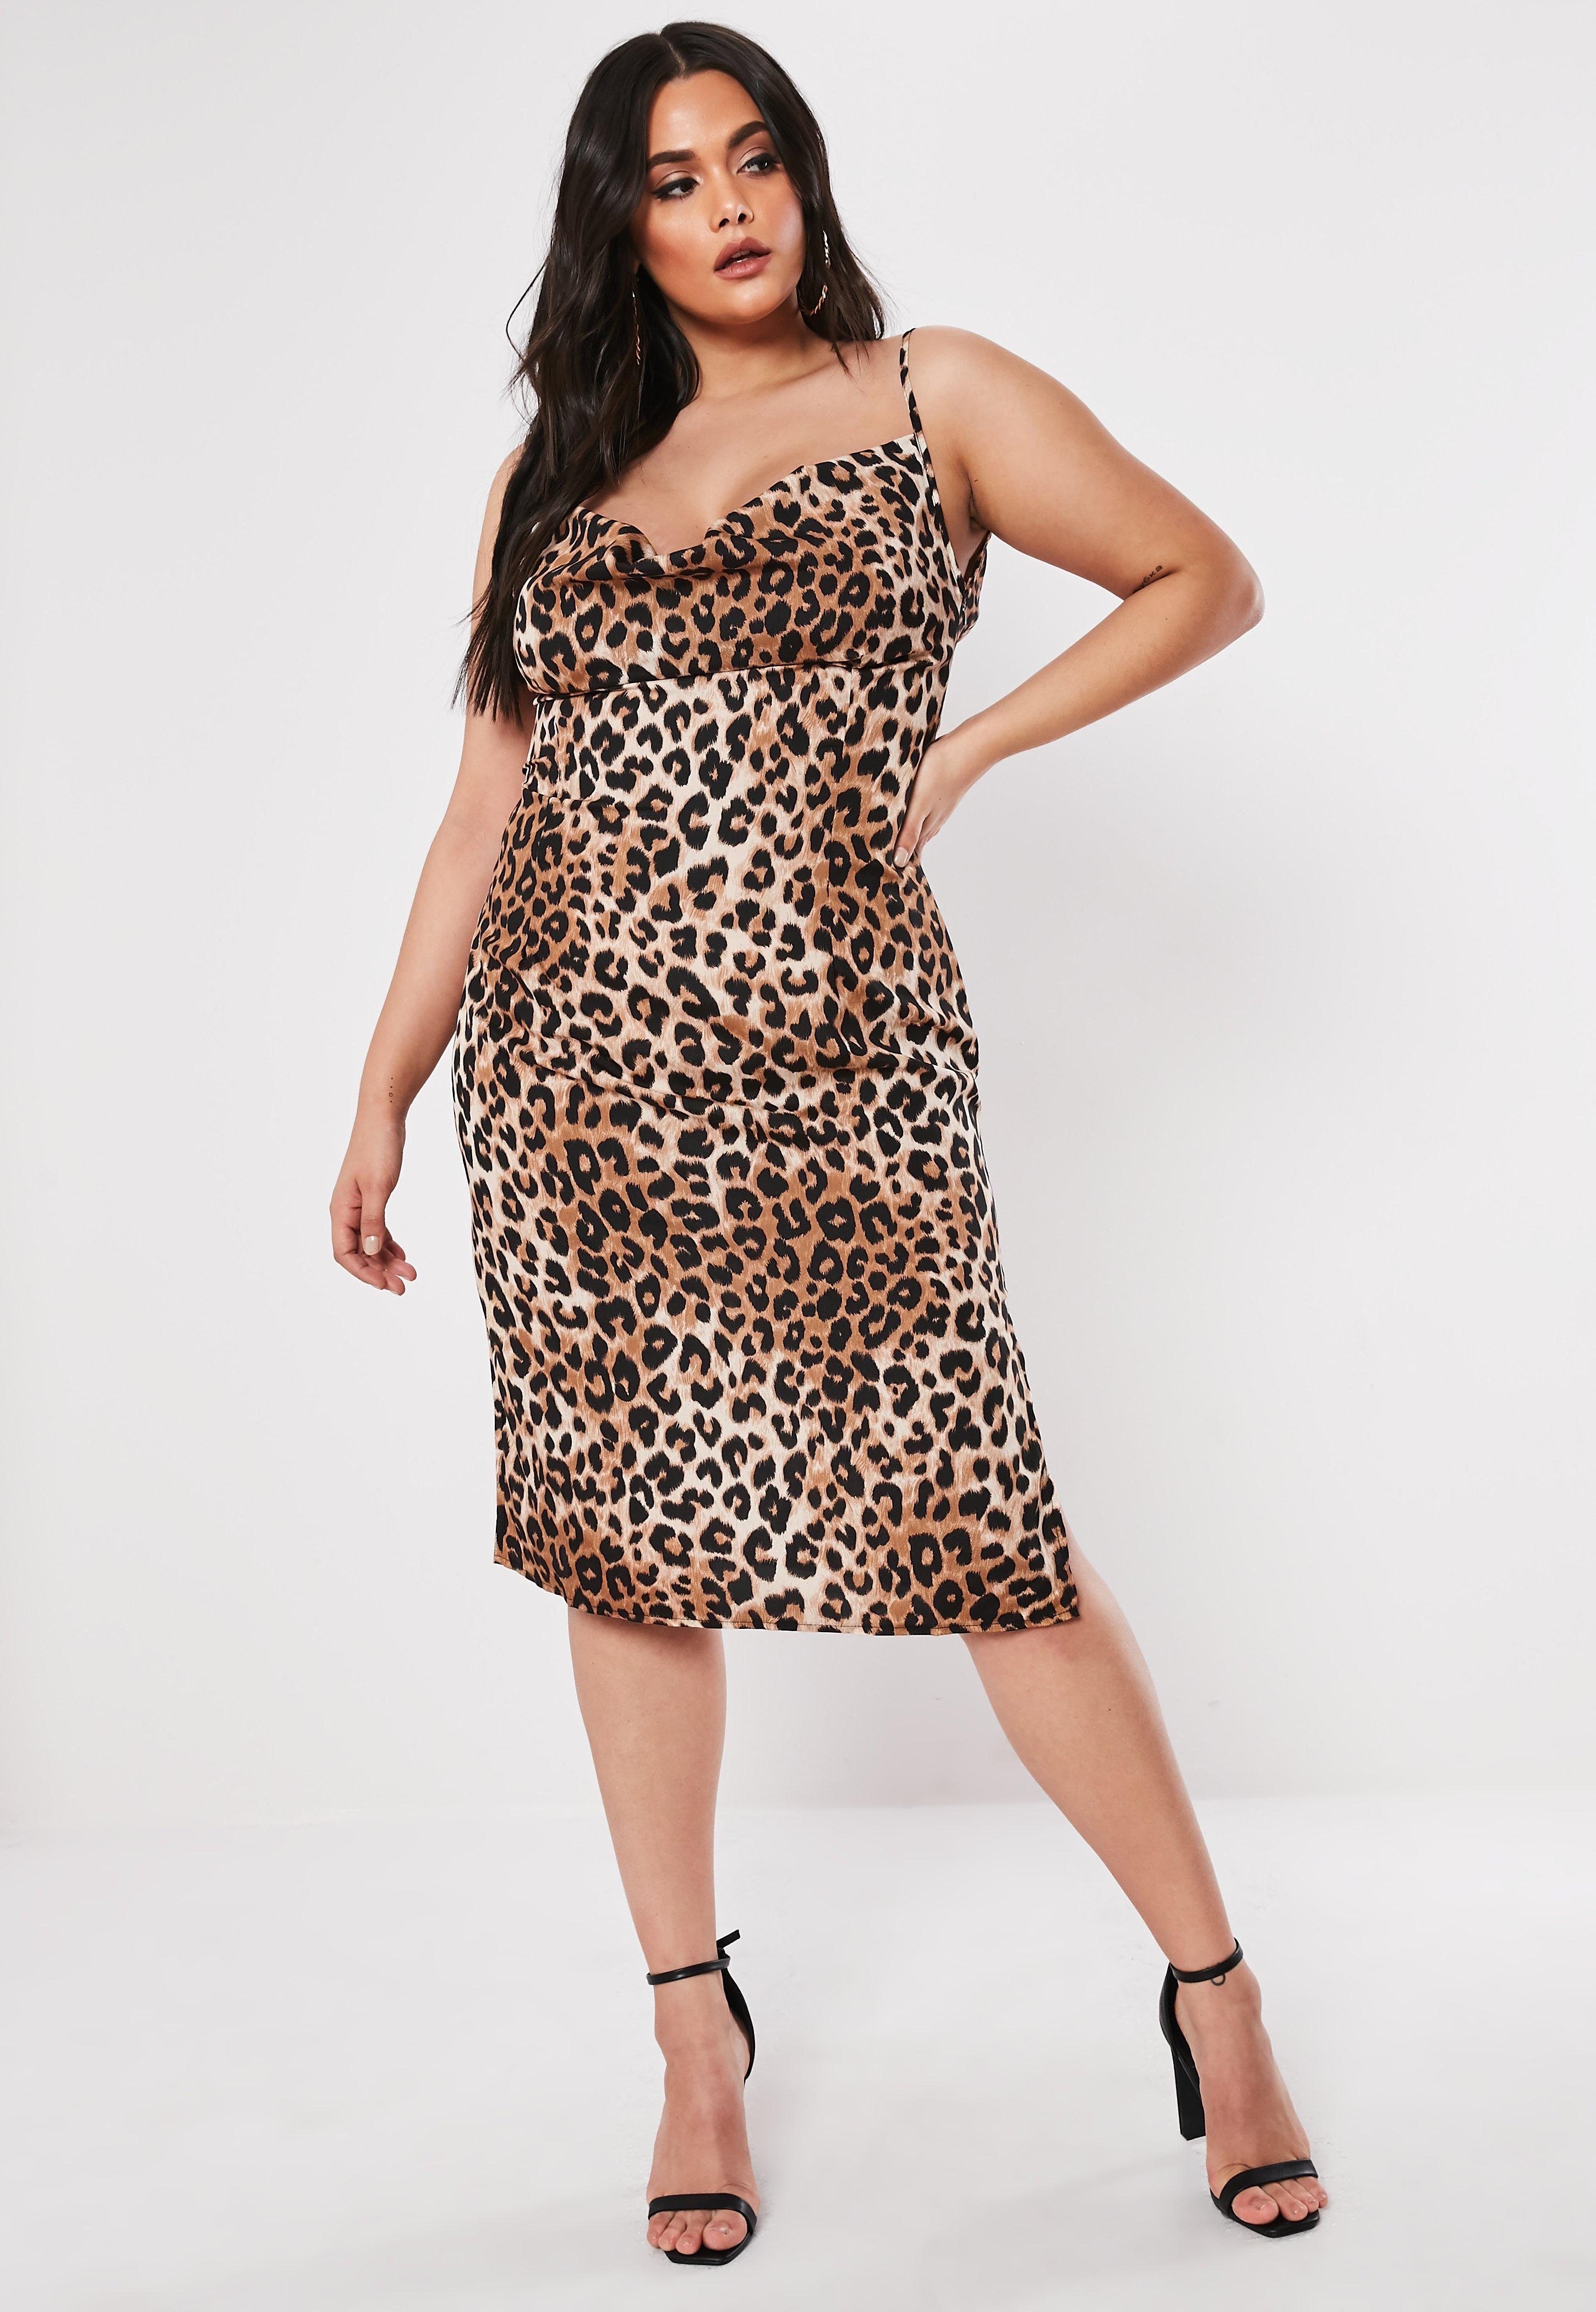 66217aded75 Plus Size Clothing   Plus Size Womens Fashion - Missguided+